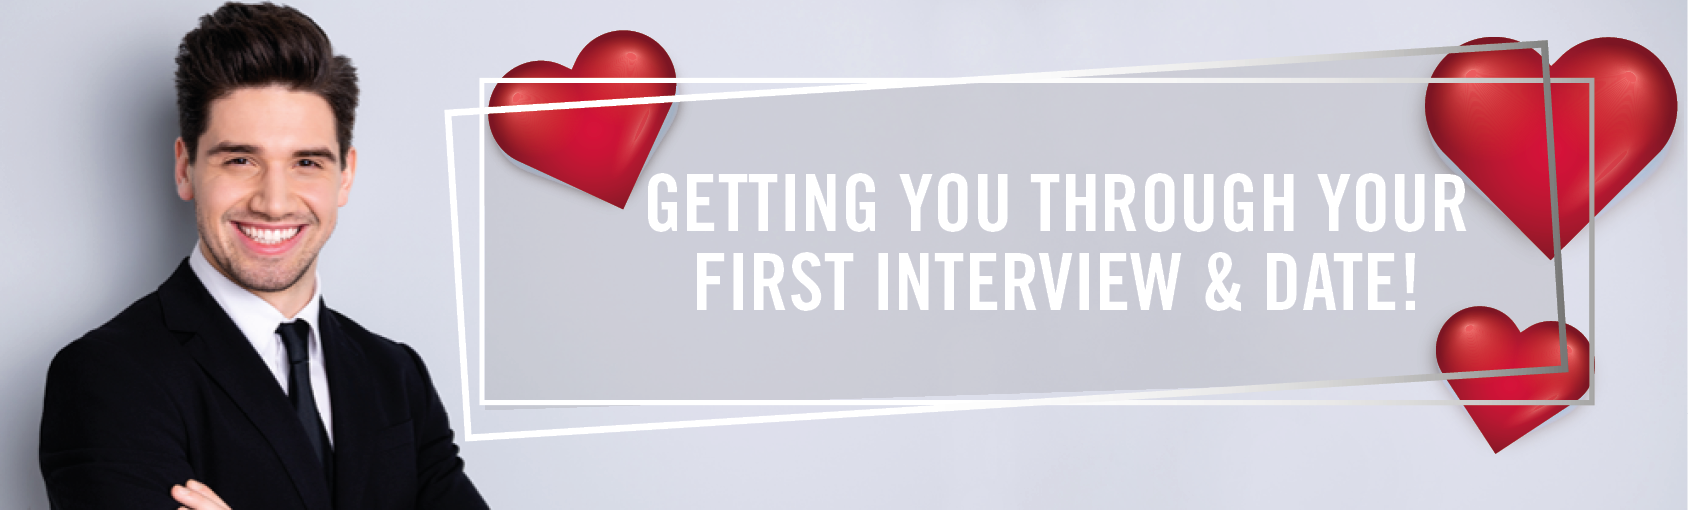 Getting you through your first interview and dates